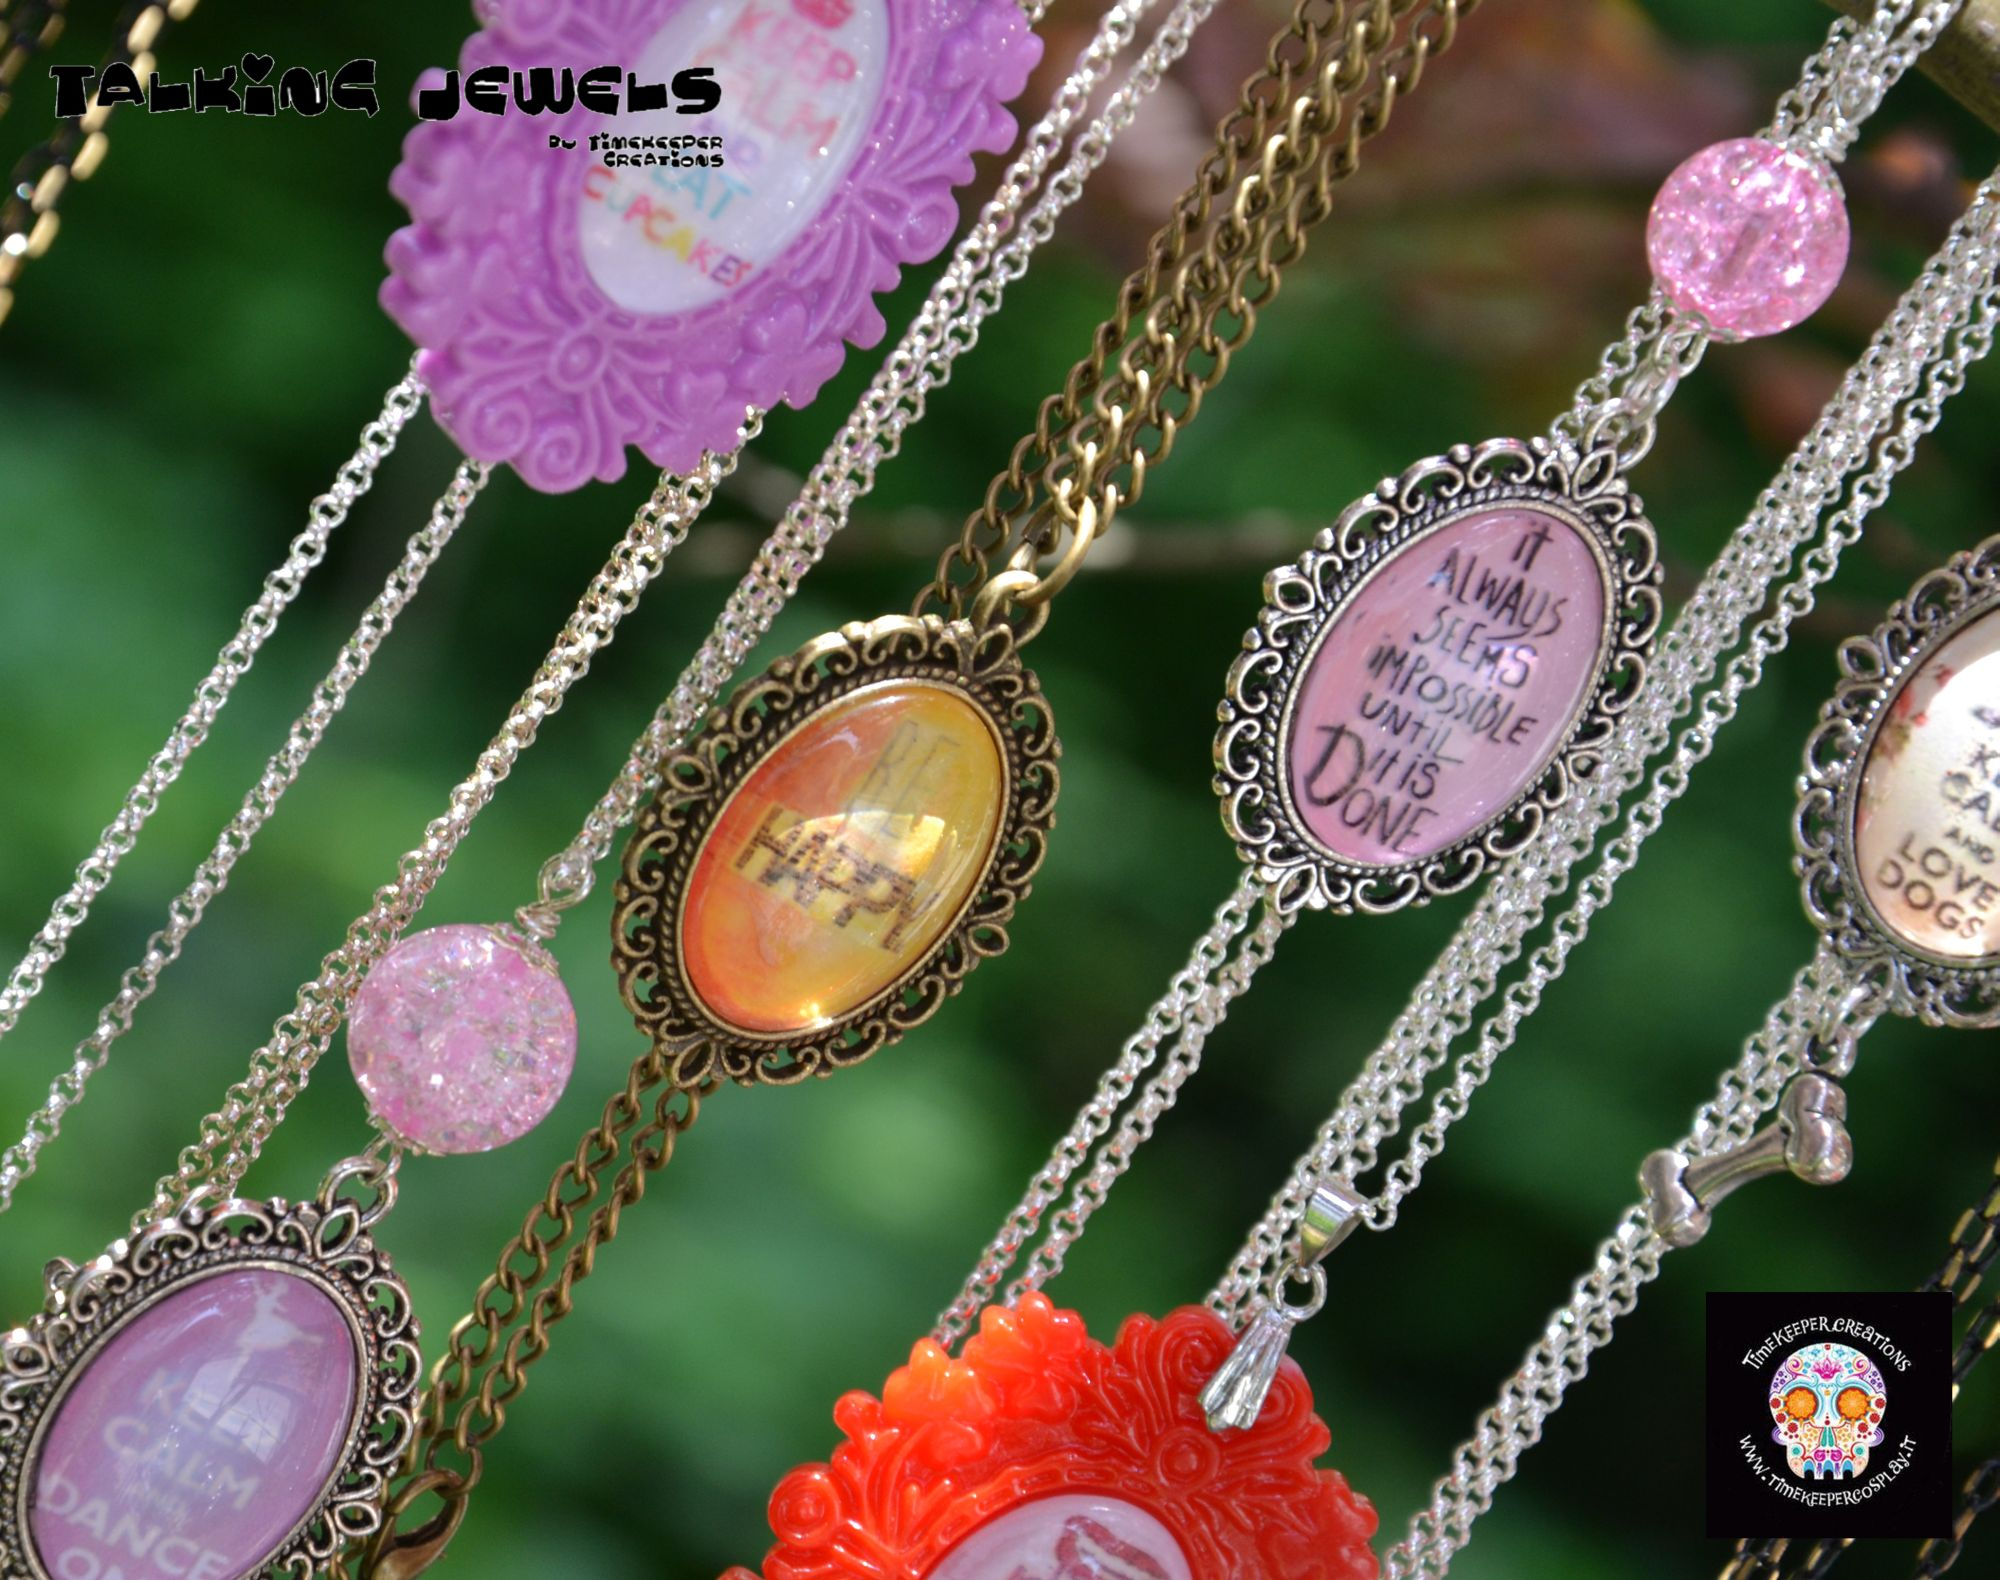 Cotton Candy Jewels di Hachiko e Timekeeper Creations